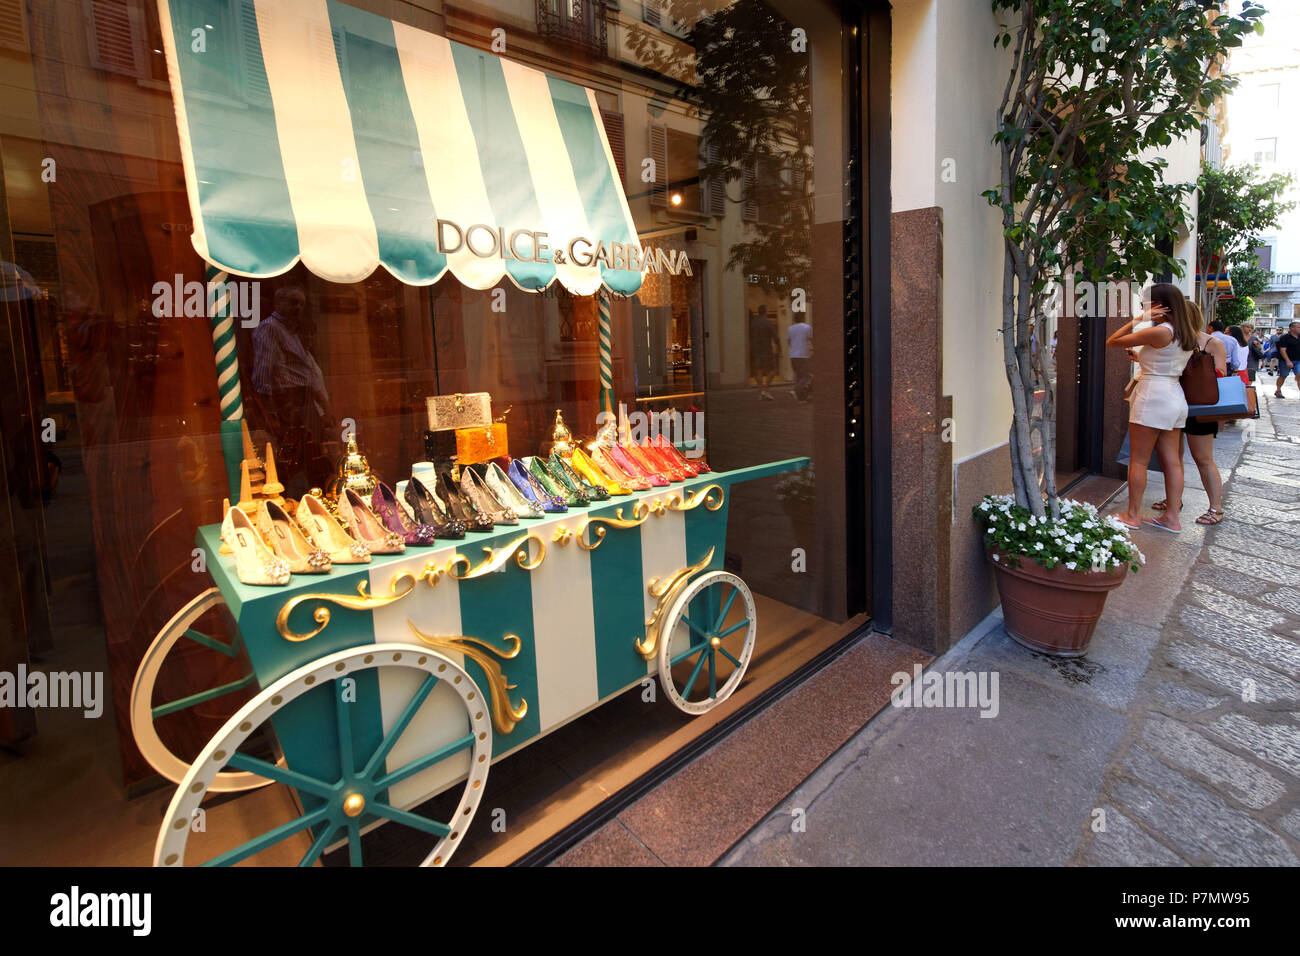 Italy, Lombardy, Milan, Fashion Quadrilateral, Via della Spiga, Dolce and Gabbana Store - Stock Image